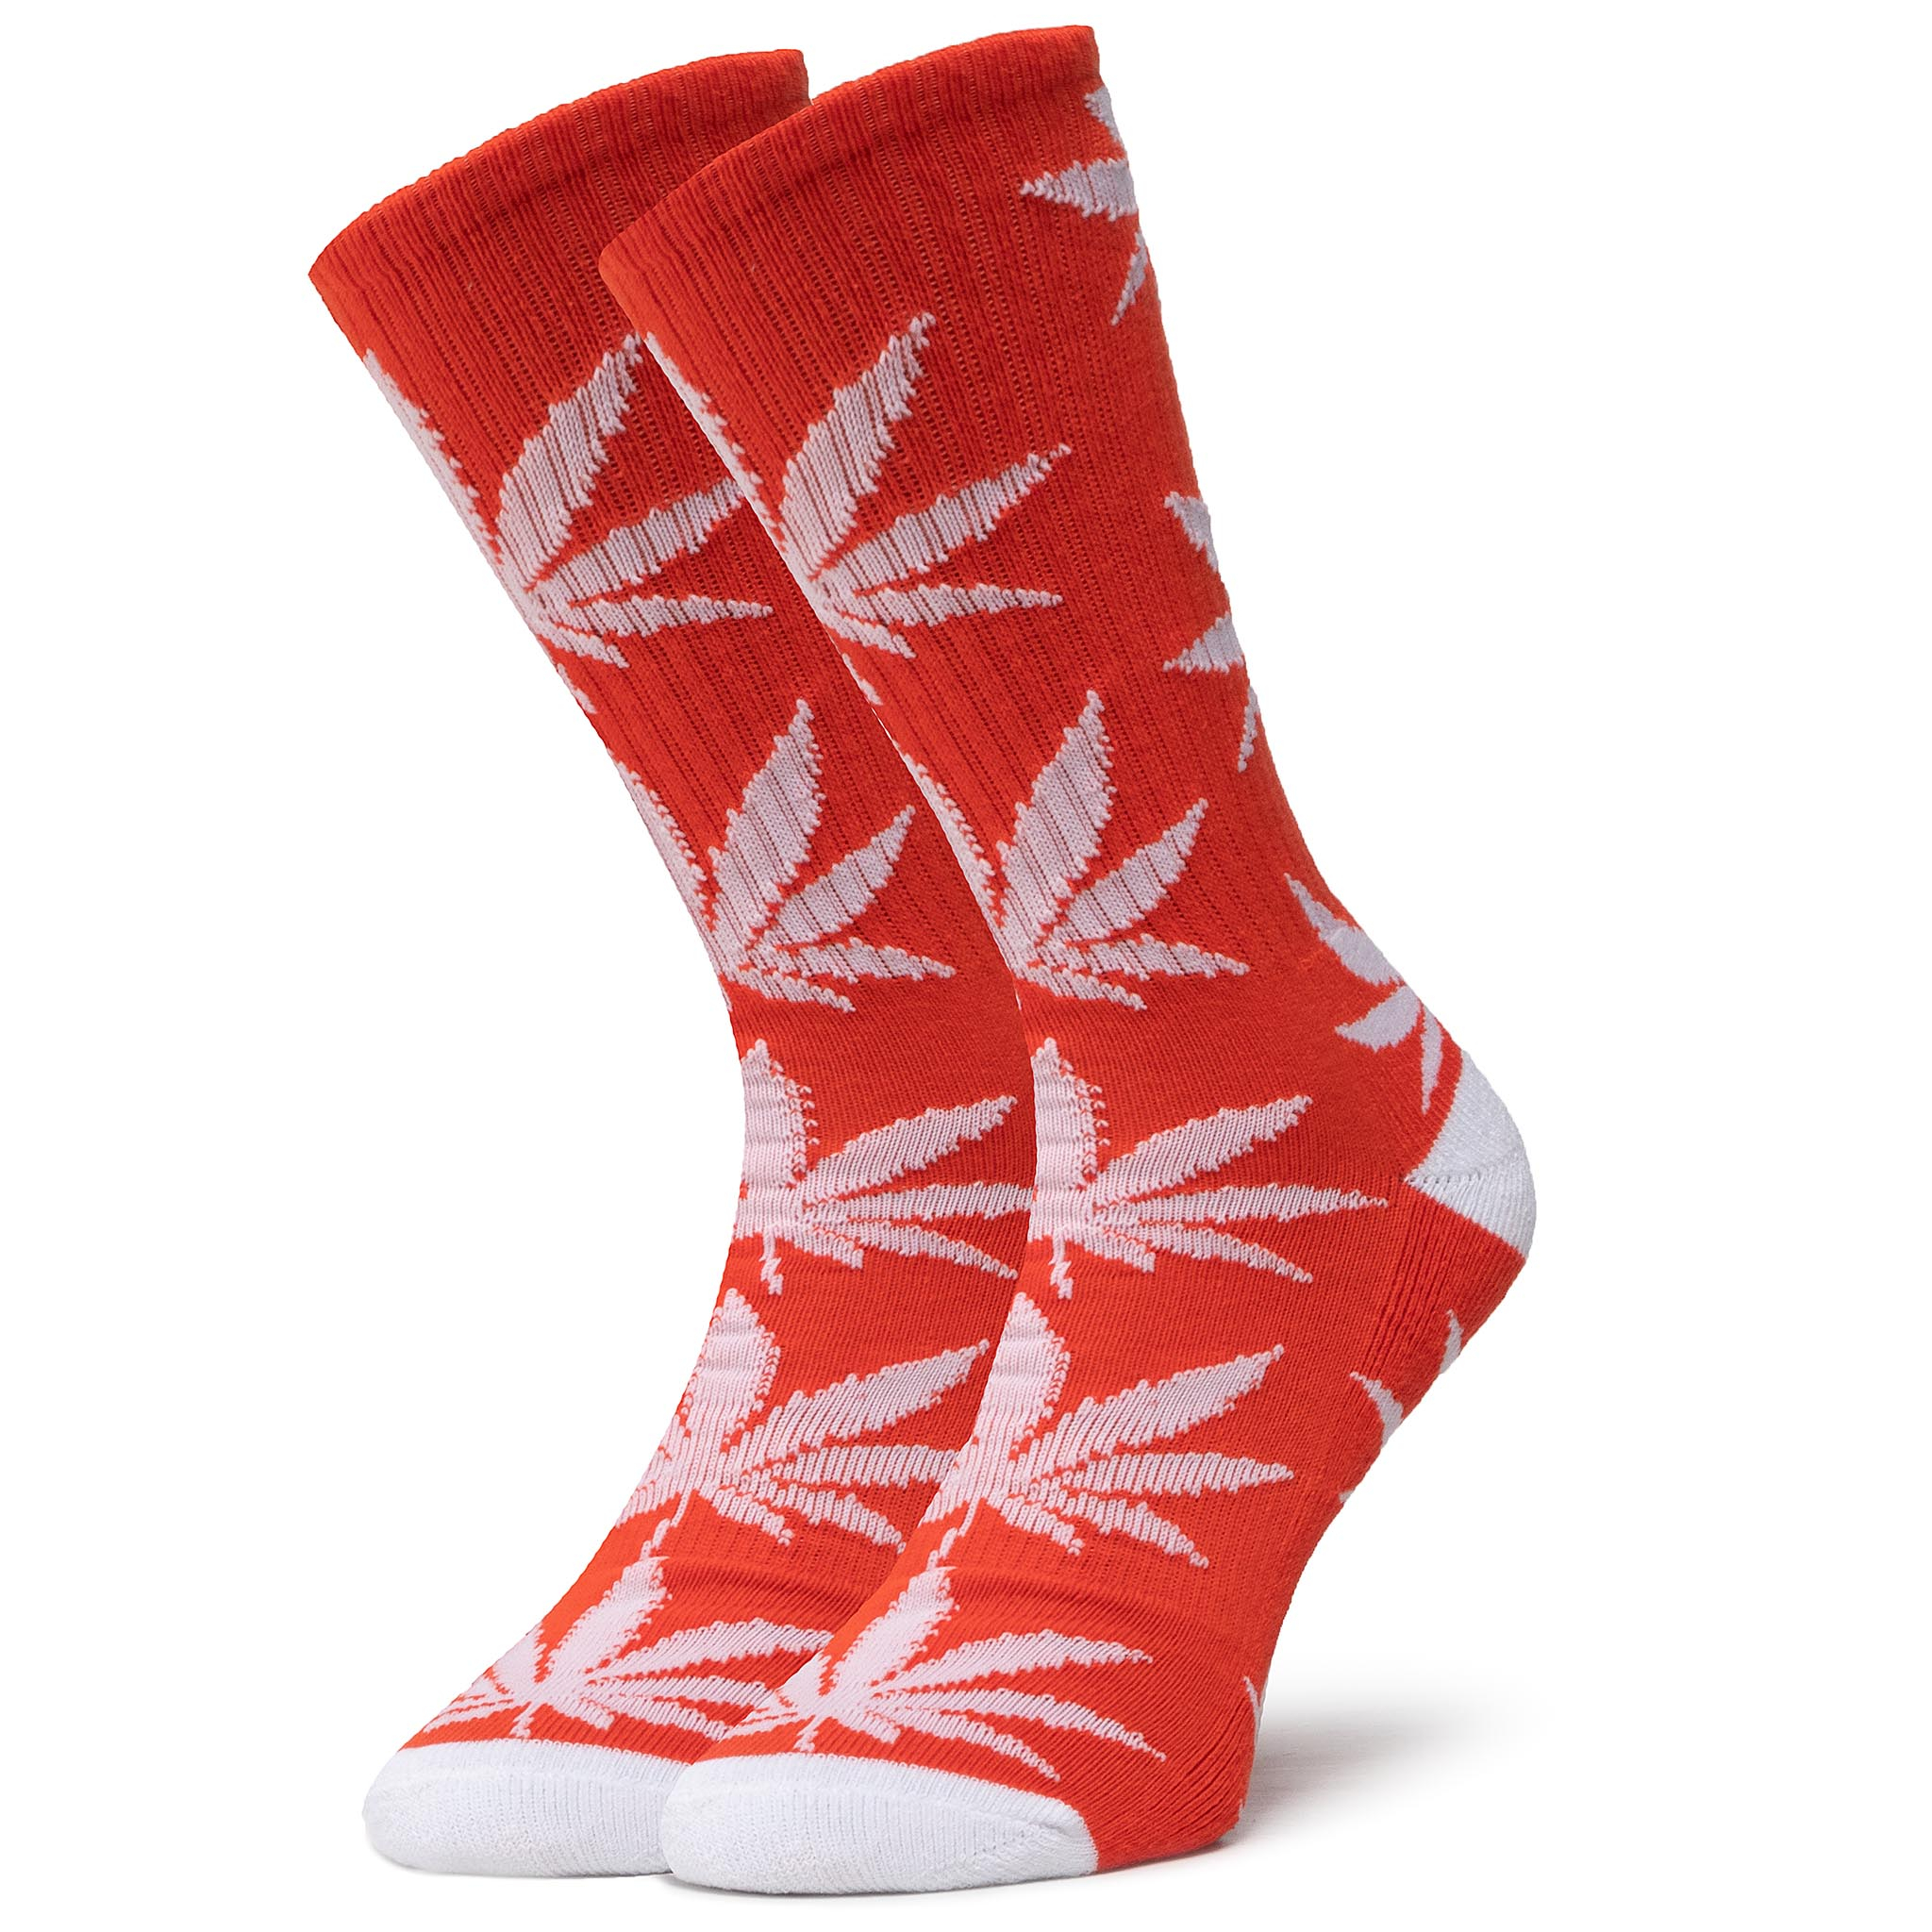 Șosete Înalte Unisex Huf - Essentials Plantlife Sock Sk00298 R.Os Mandarin Red imagine epantofi.ro 2021